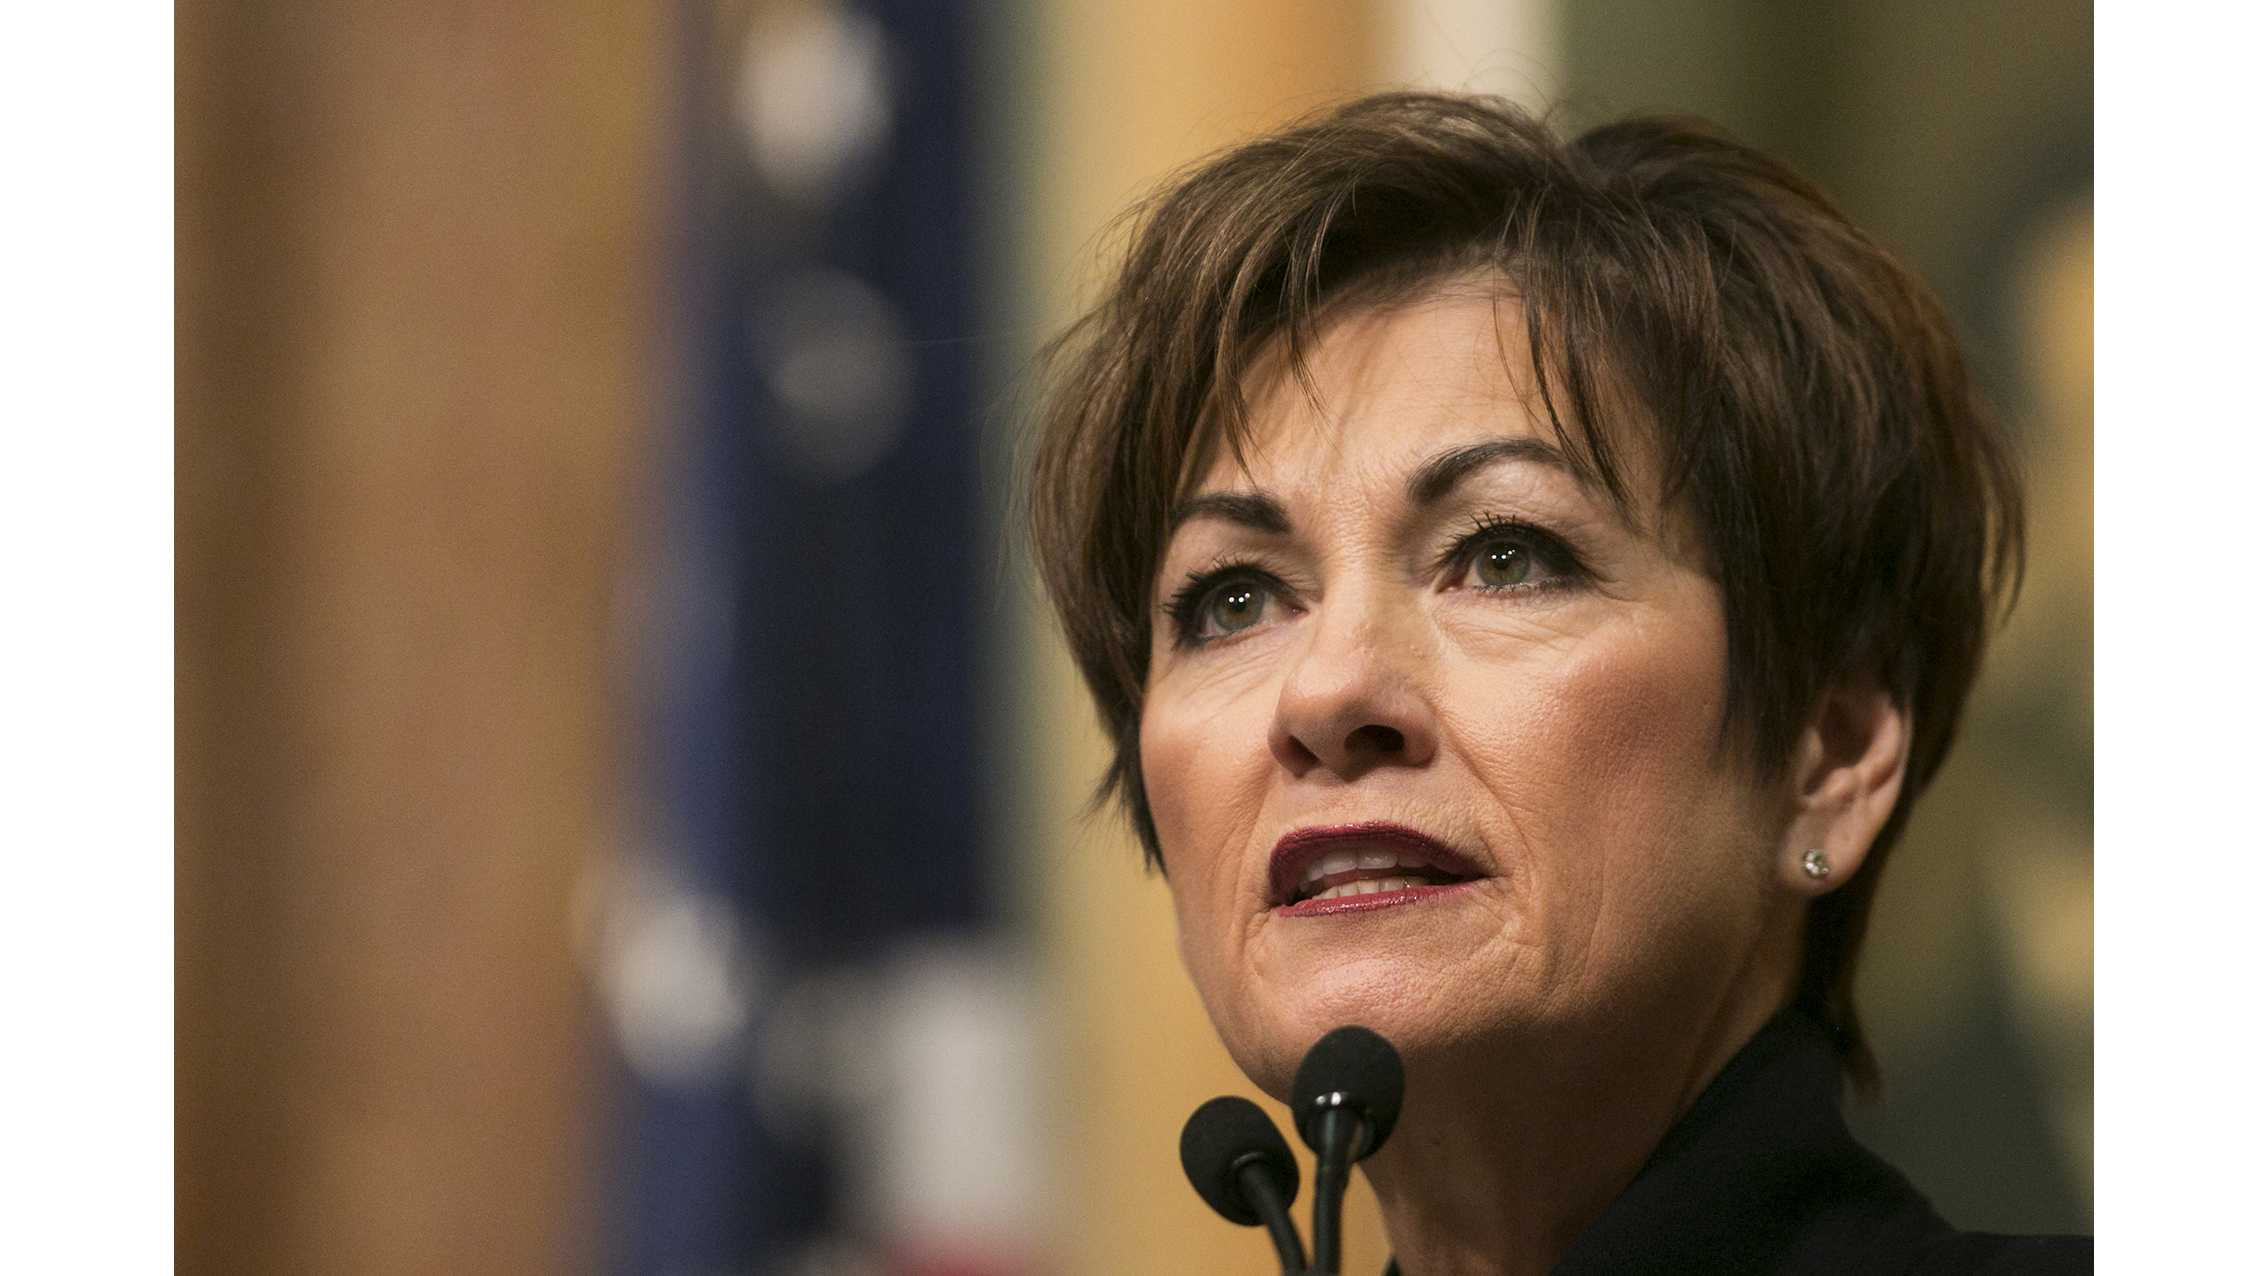 Iowa Gov. Kim Reynolds speaks during her first Condition of the State address in the Iowa State Capitol in Des Moines on Tuesday, Jan. 9, 2018. Reynolds took over the governor office in May of 2017. (Joseph Cress/The Daily Iowan)